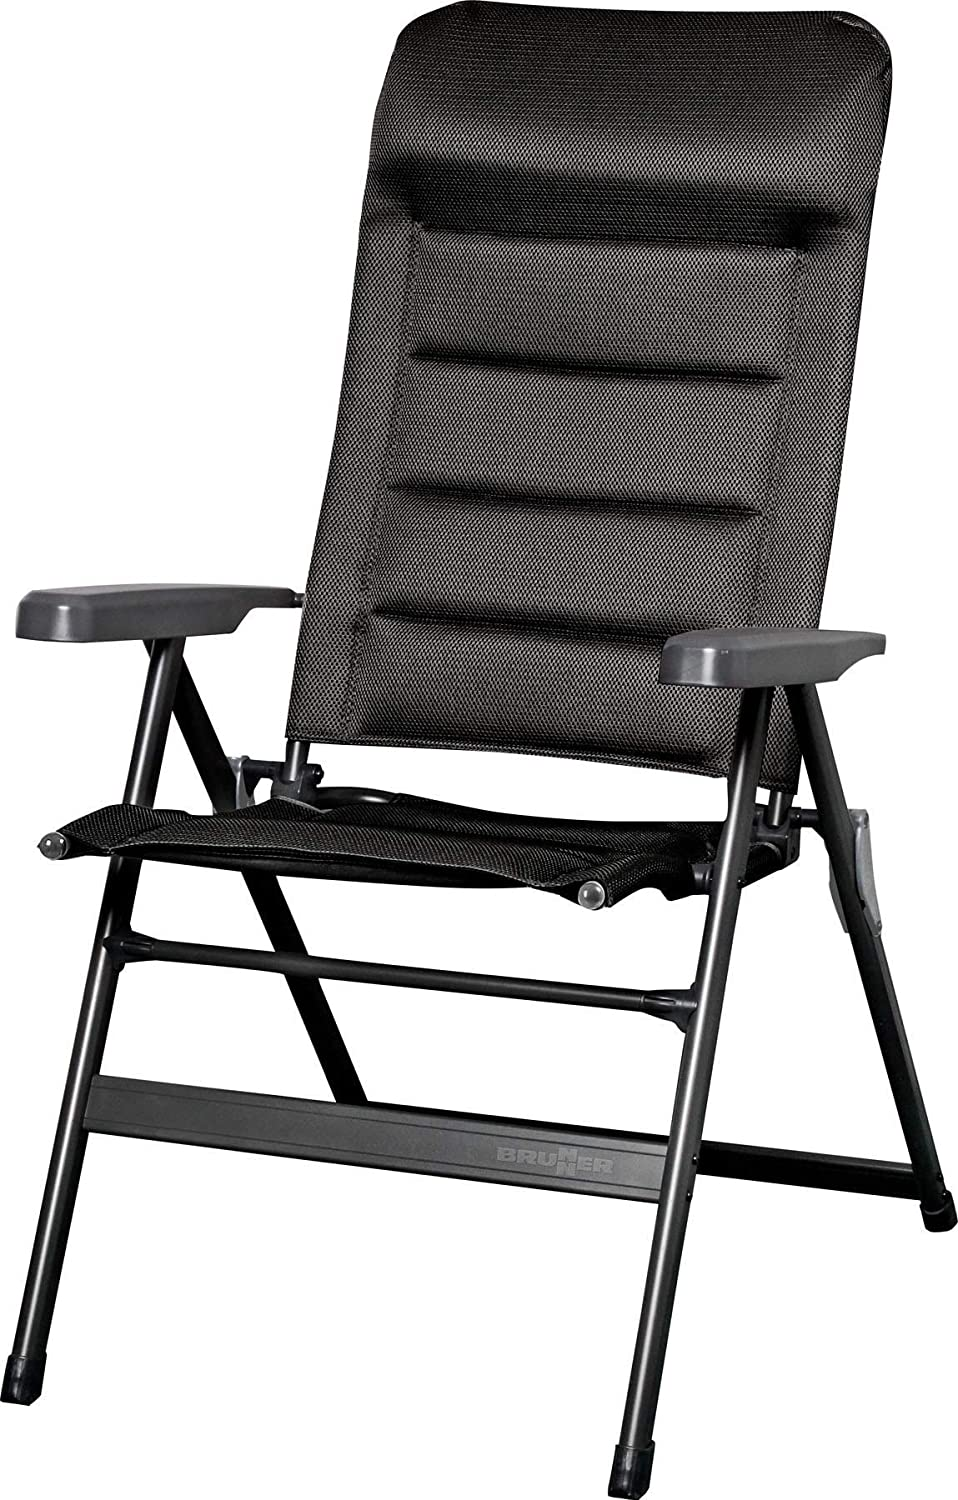 Brunner Silla plegable aravel 3d C09: Amazon.es: Deportes y ...